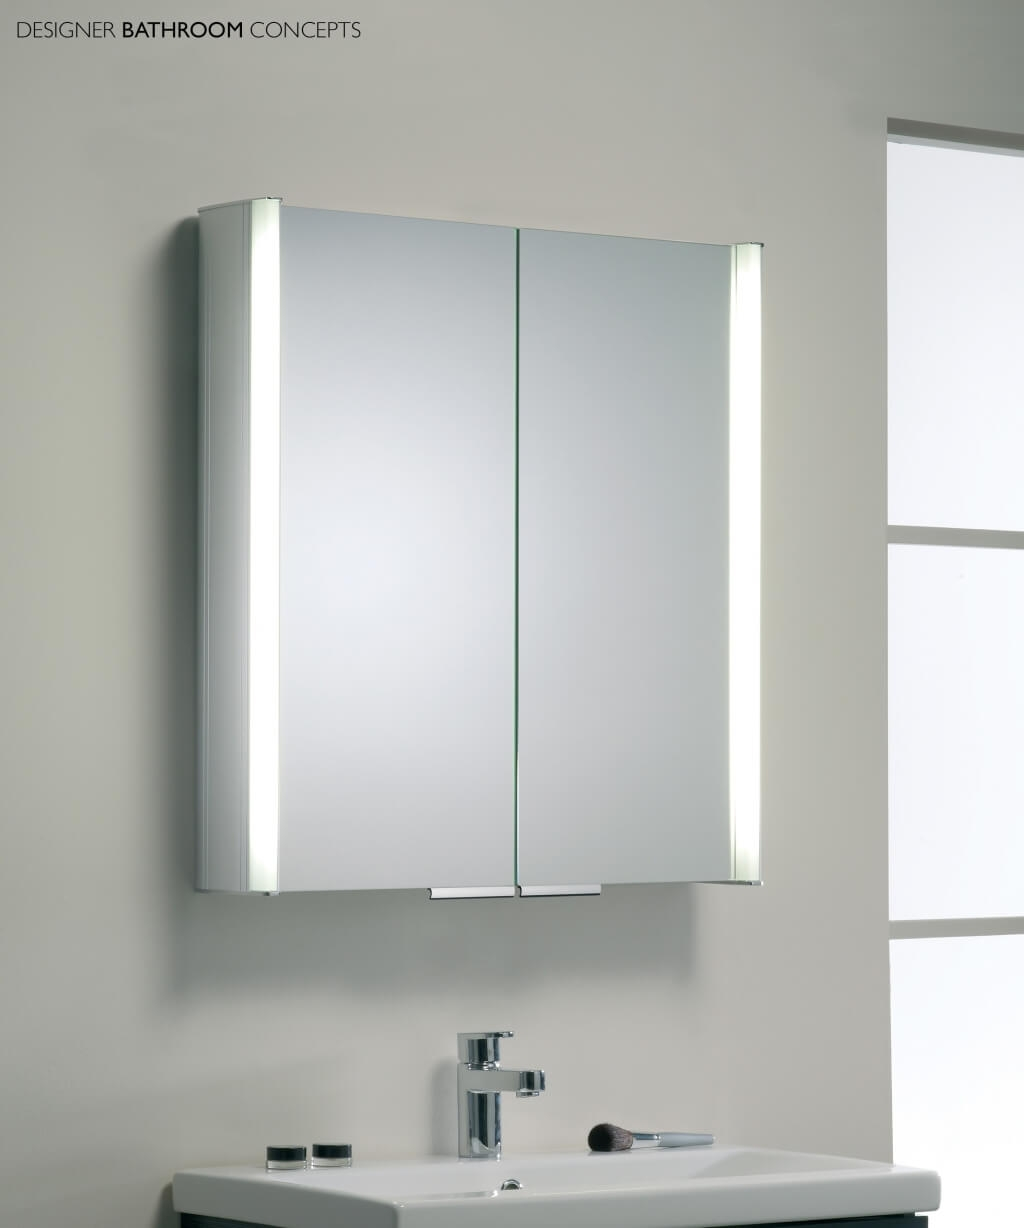 Bathroom Illuminated Mirror Cabinets